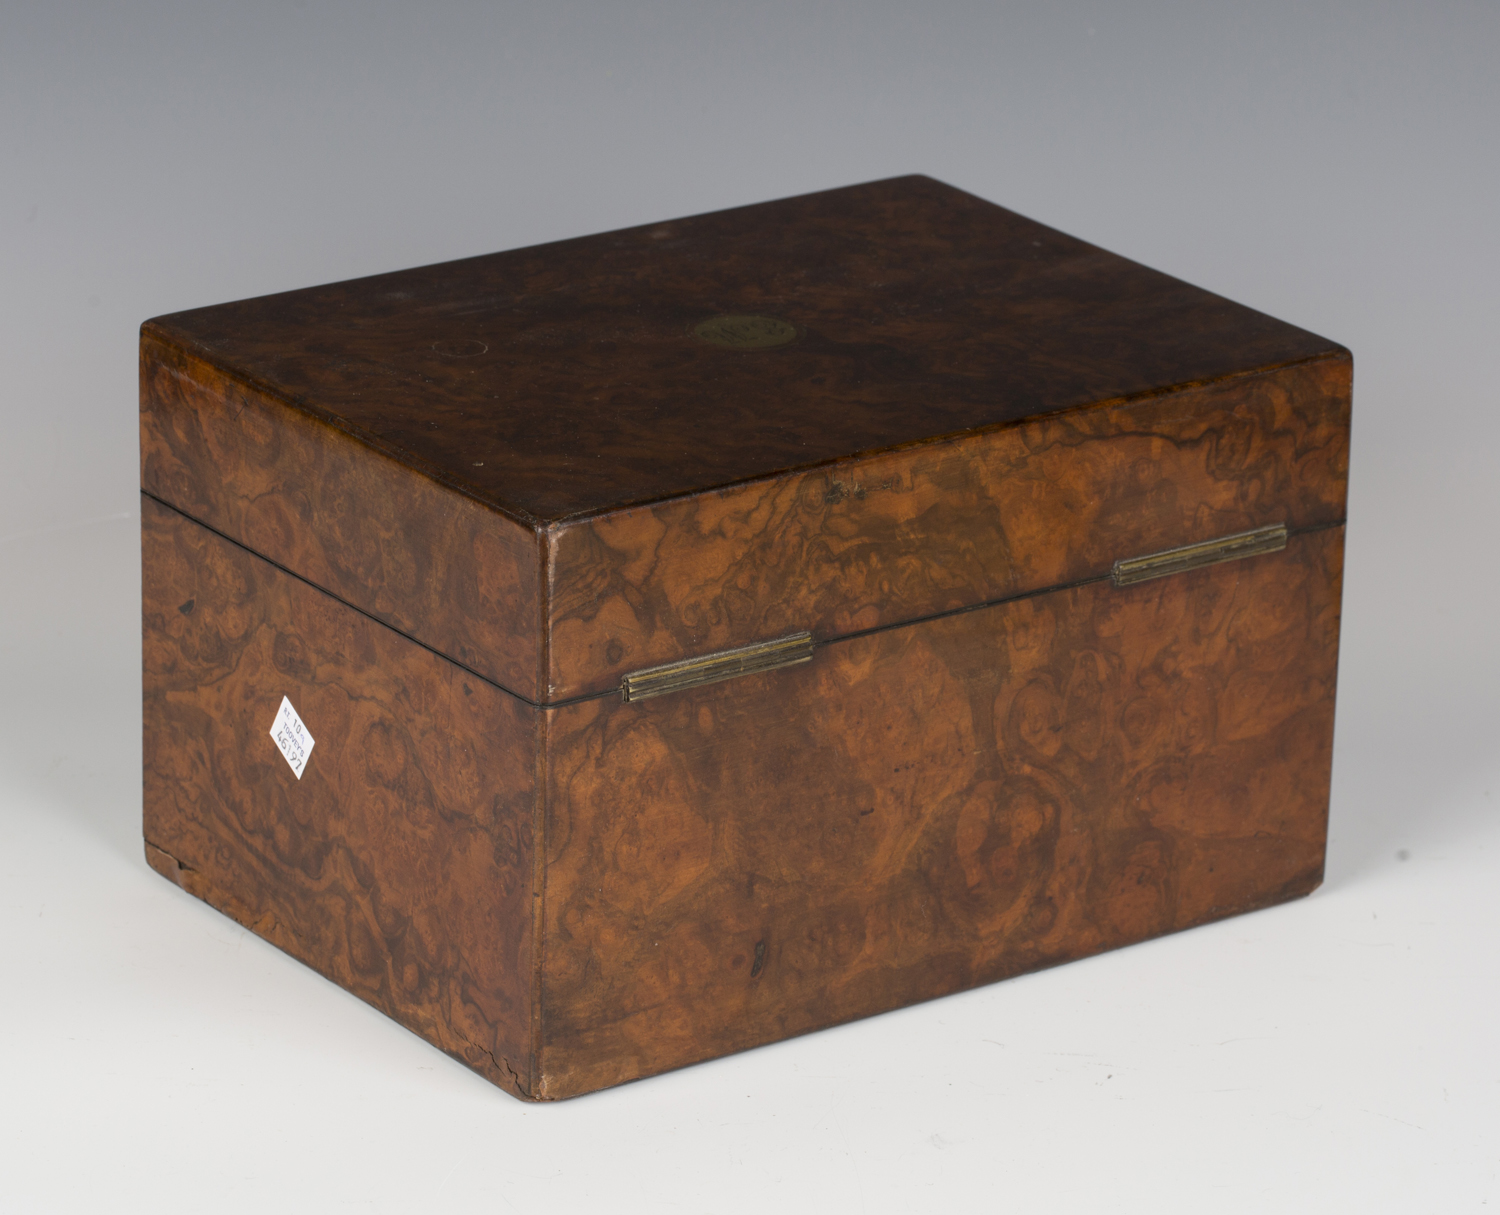 A mid-Victorian burr walnut jewellery box by Farthing & Thornhill, 42 Cornhill, the hinged lid - Image 5 of 5